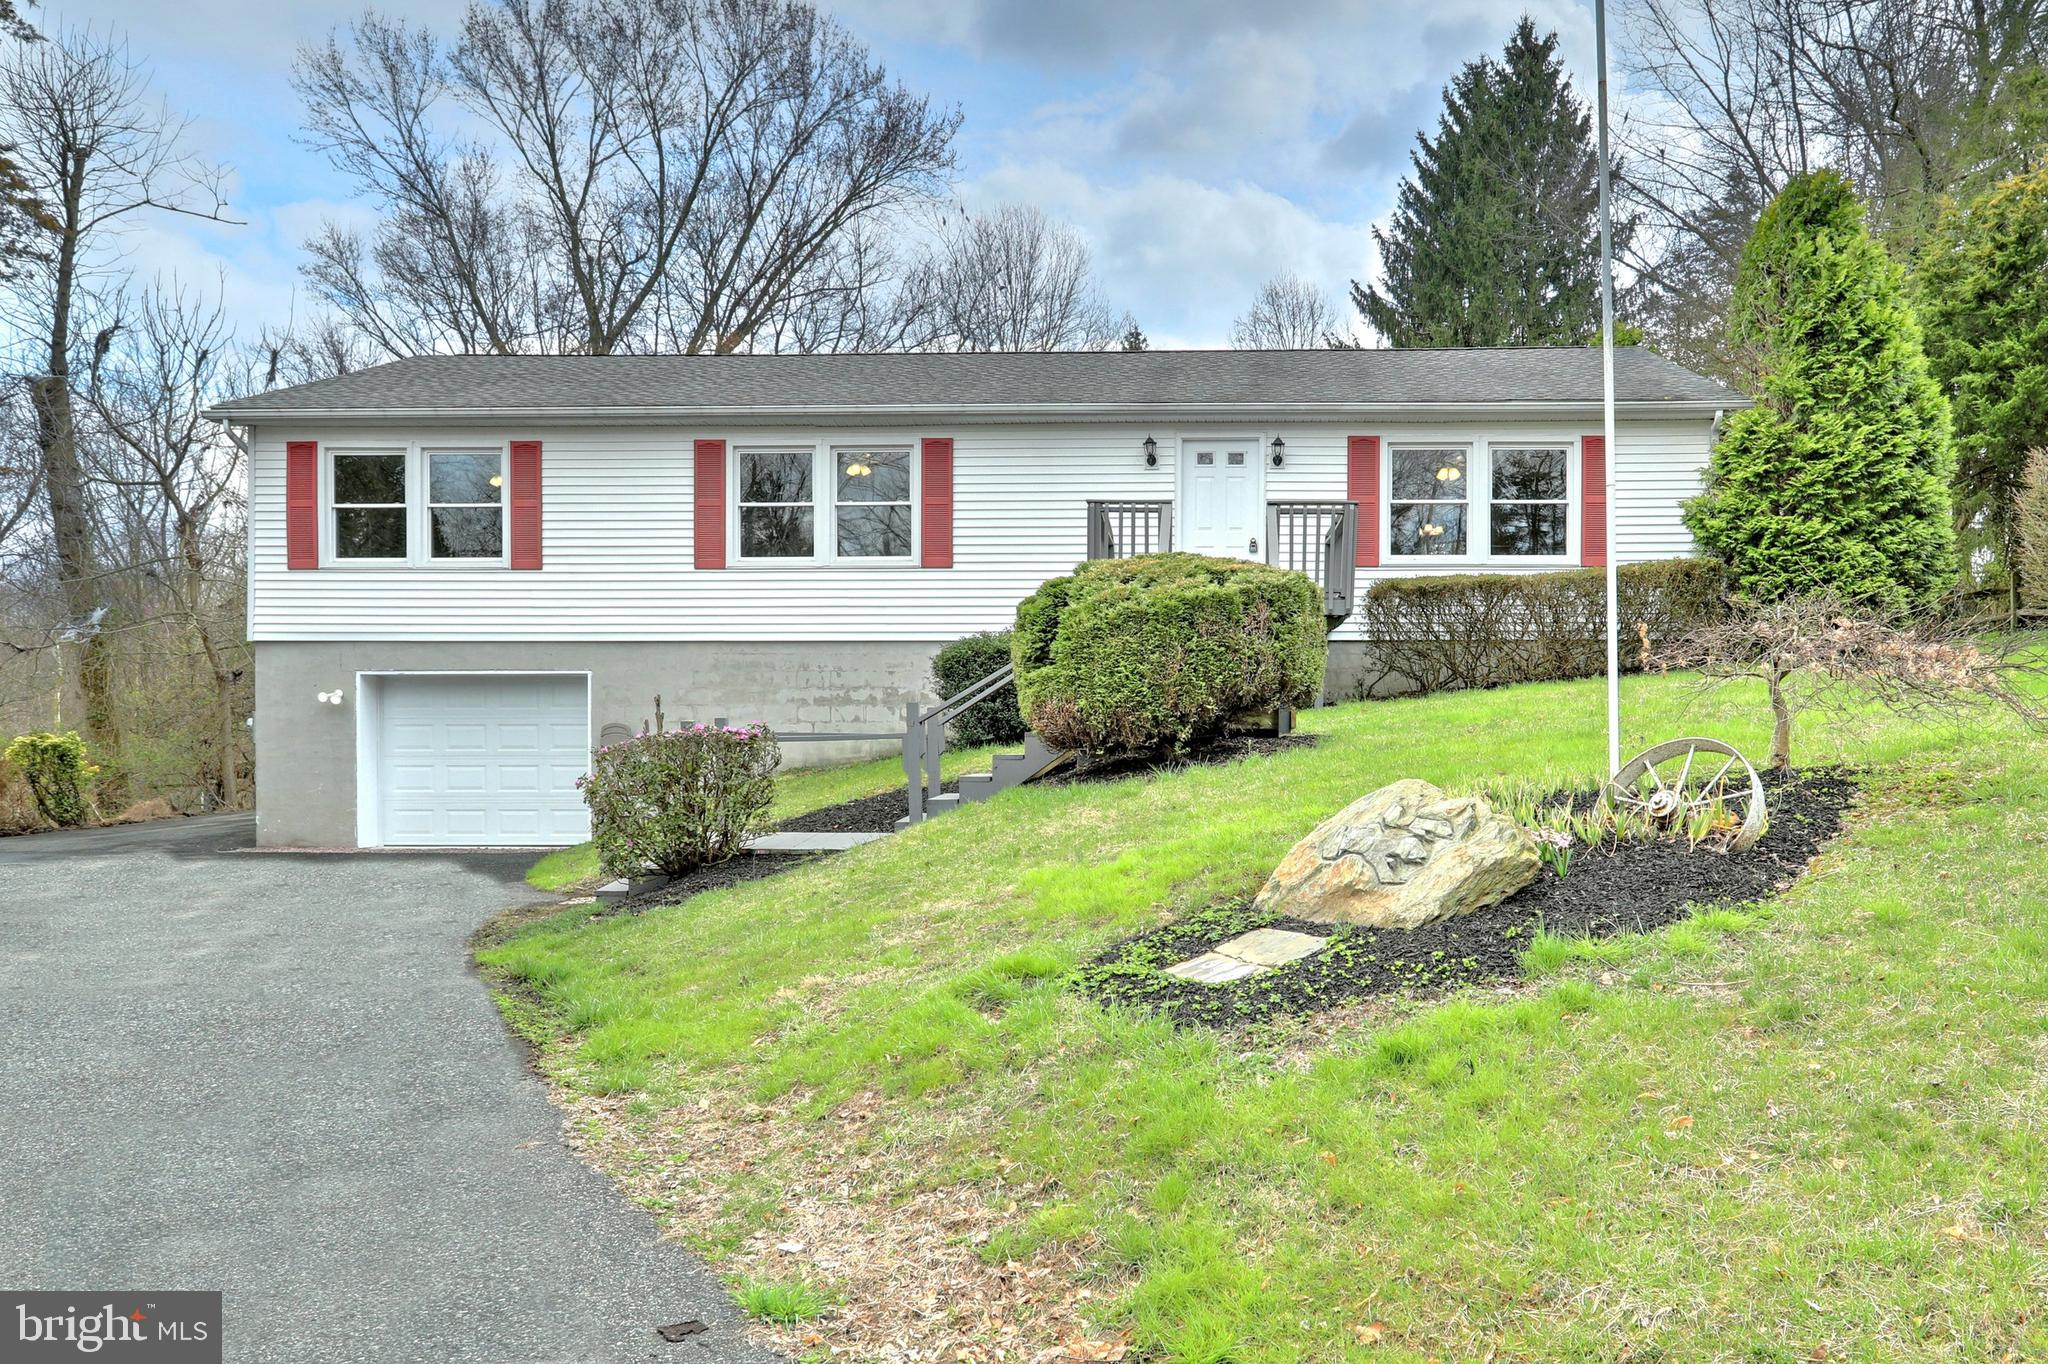 964 AUBEL ROAD, DELTA, PA 17314